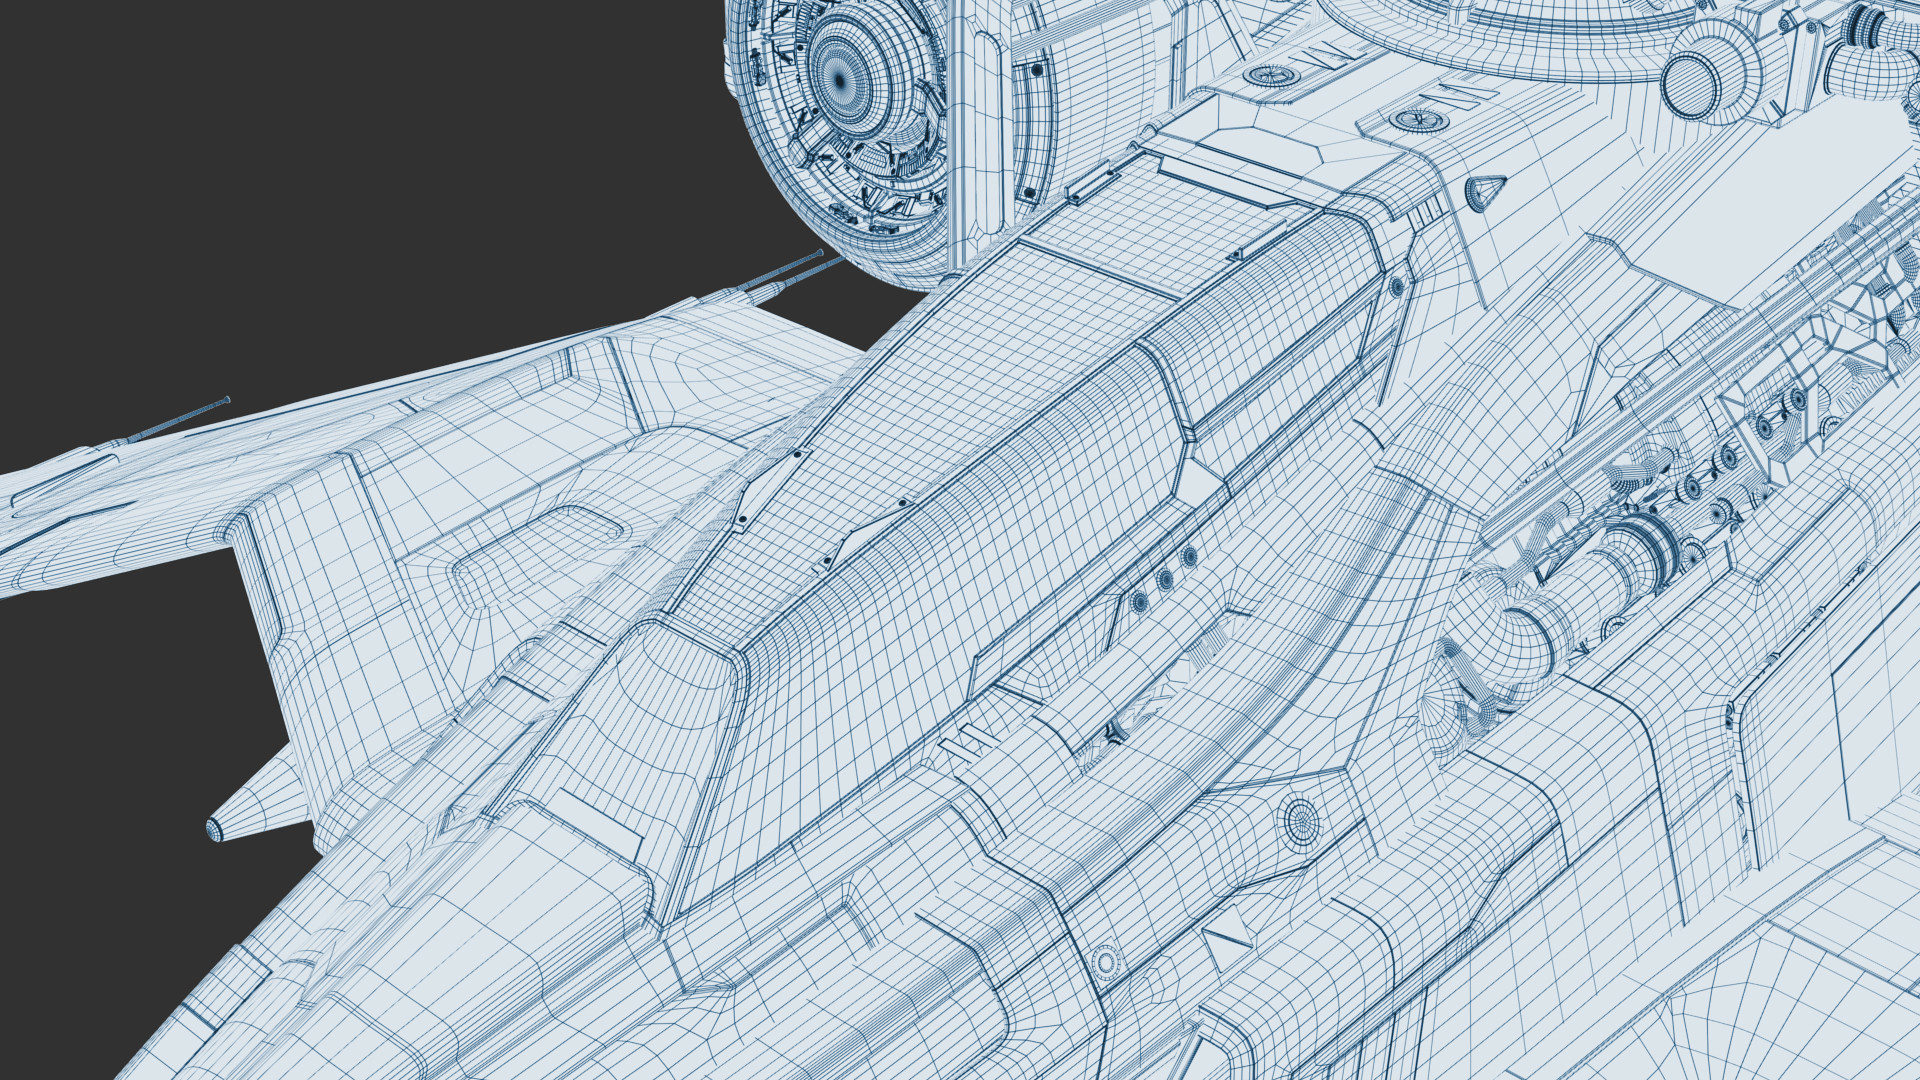 Andrew Hodgson - Wireframe and Clay Renders